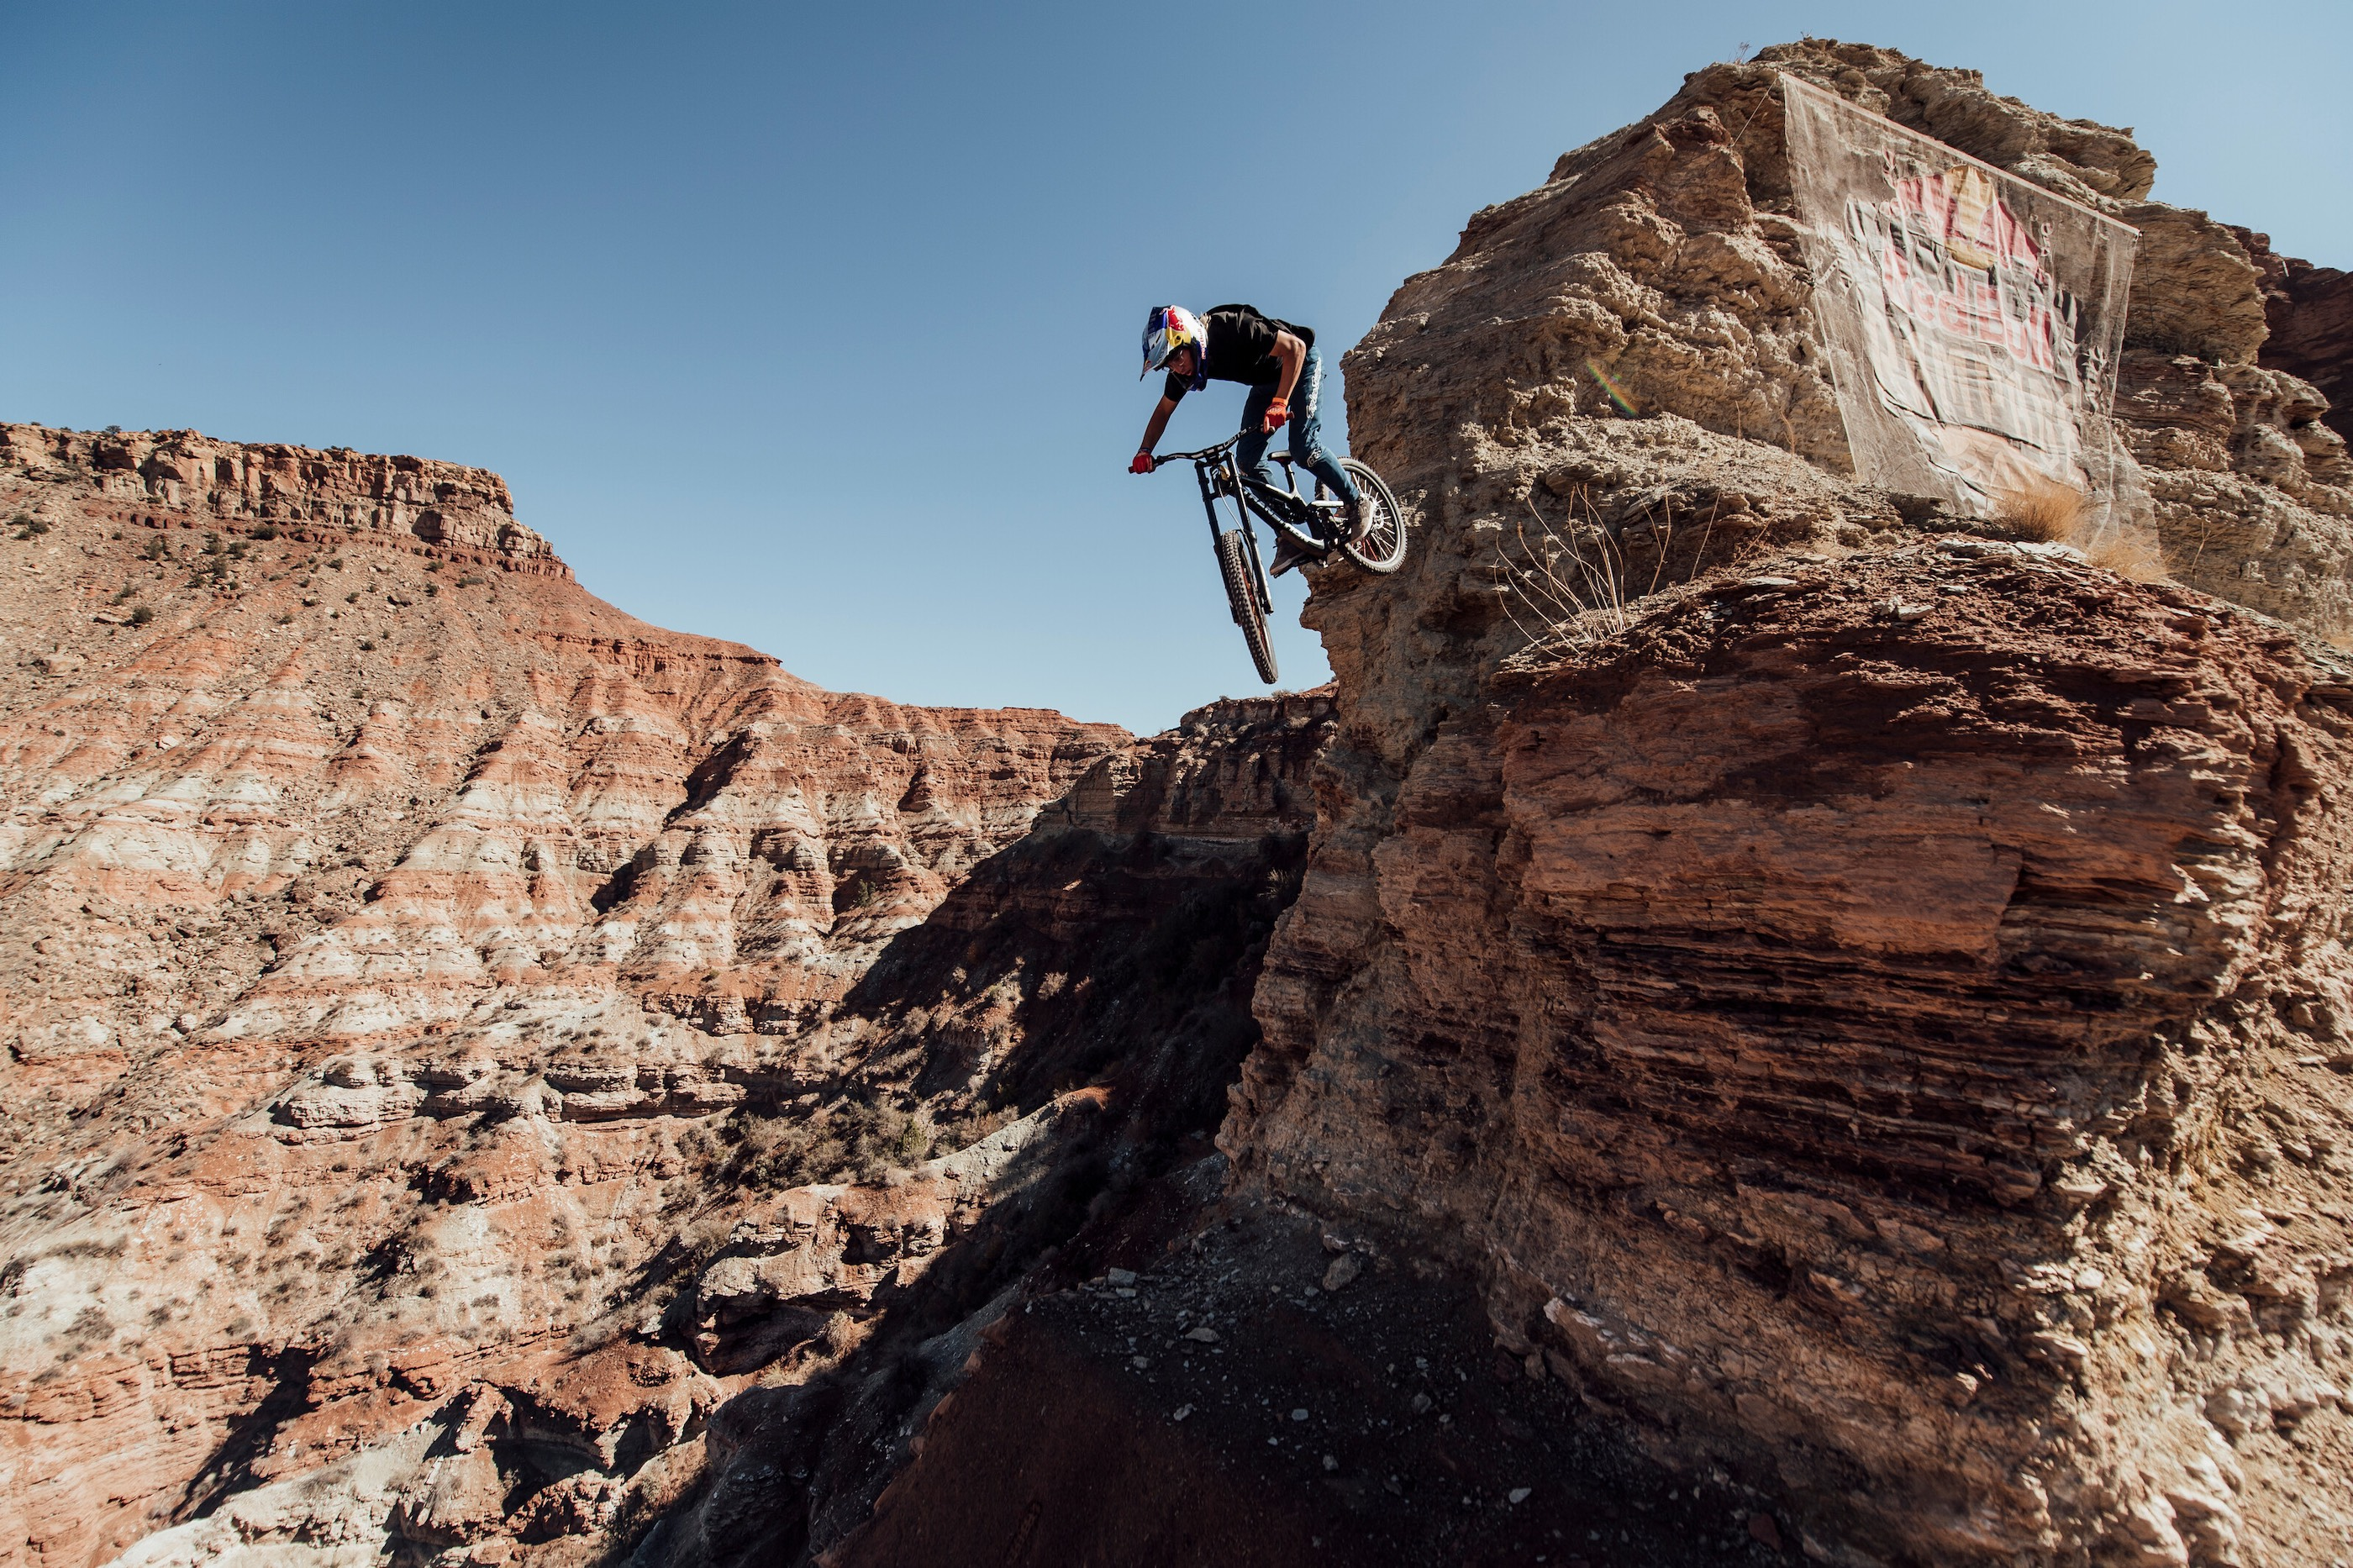 2021 Red Bull Rampage Practice Video, 2021 Red Bull Rampage Practice Video